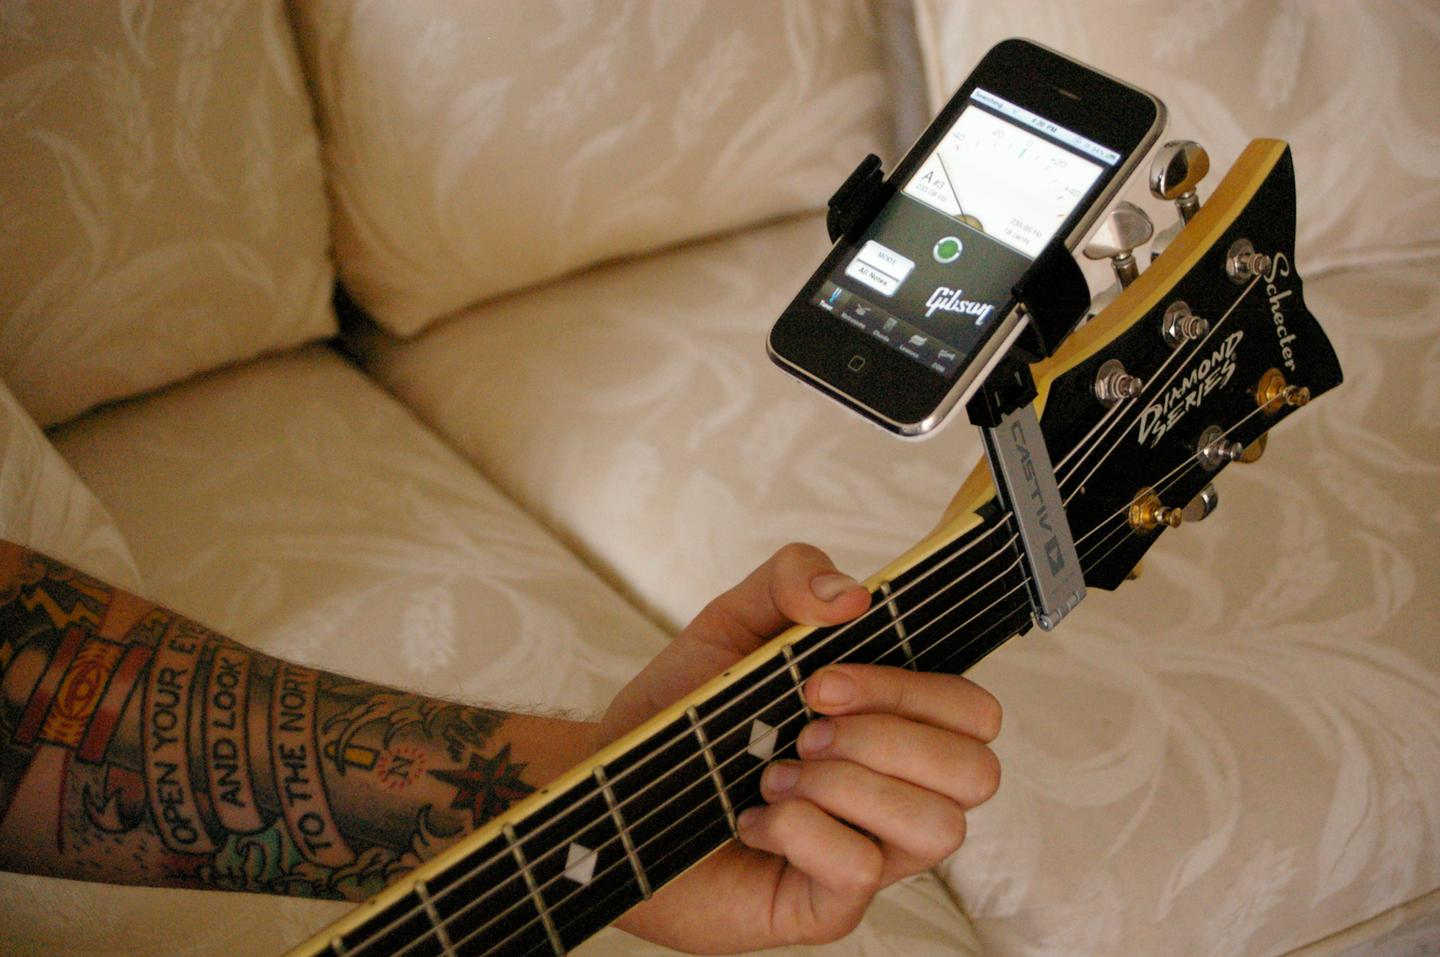 Our guitarist puts the Sidekick through its paces